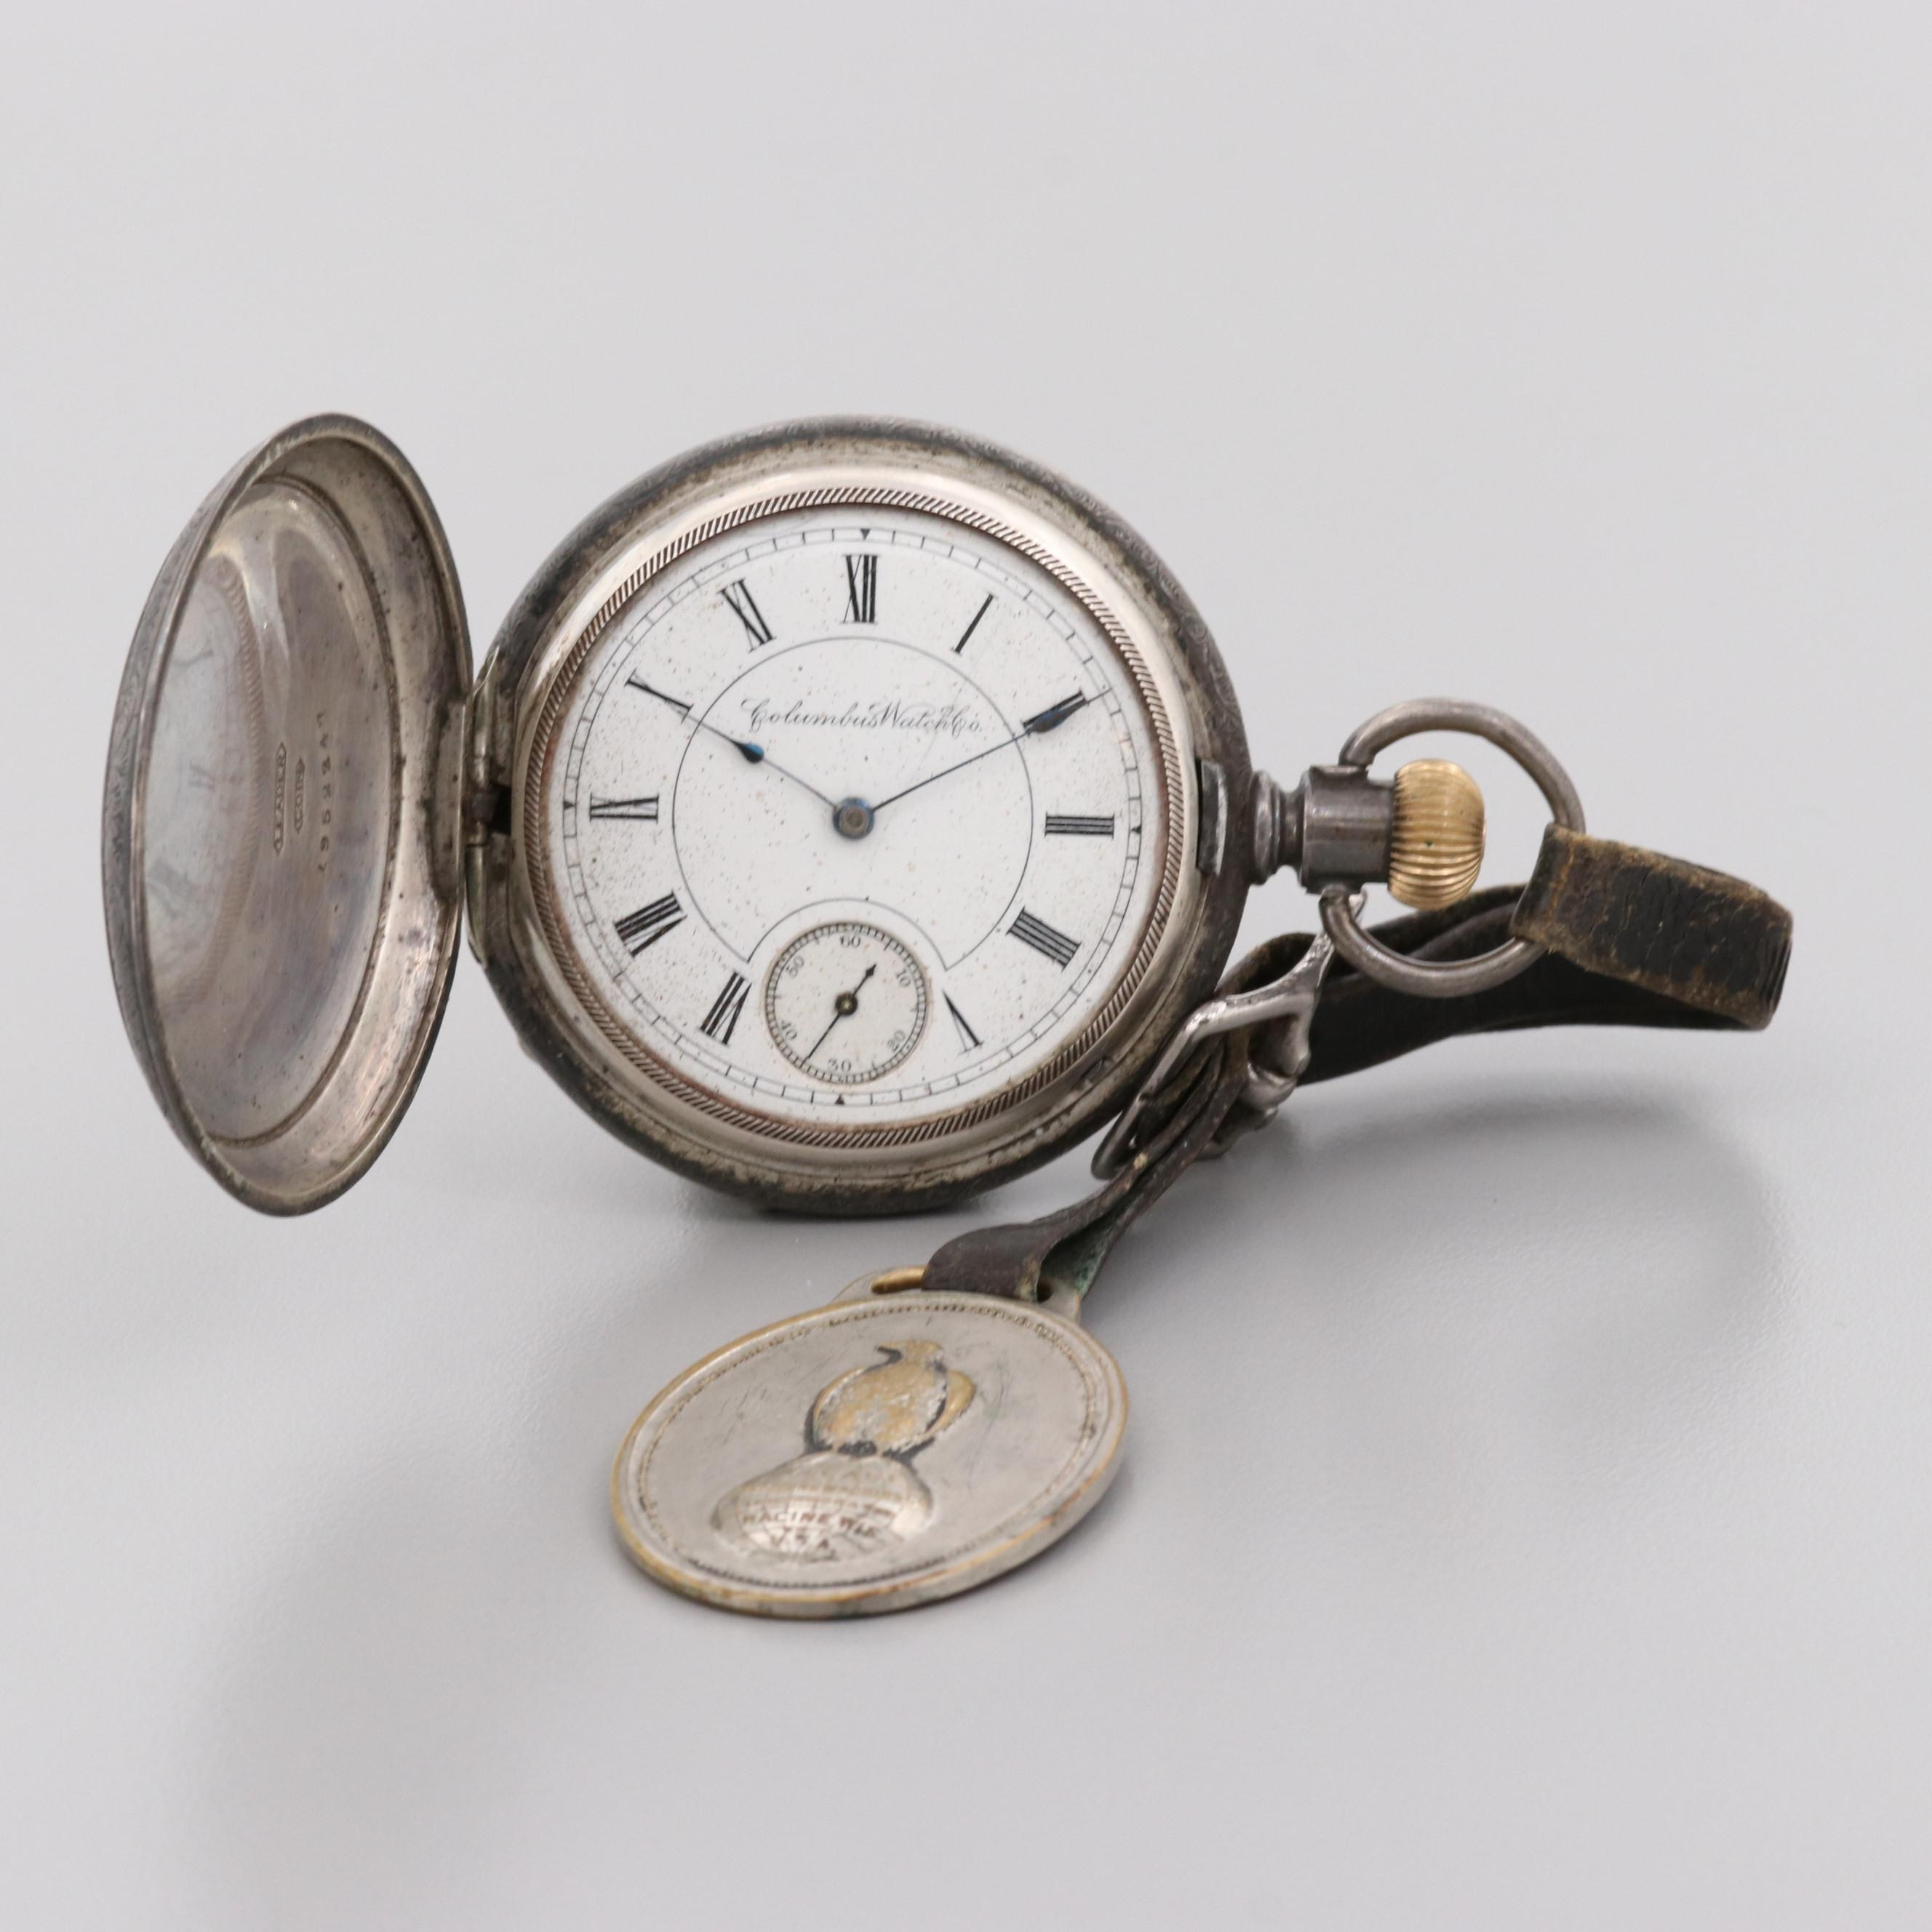 Columbus Watch Co. Coin Silver Pocket Watch, 1892